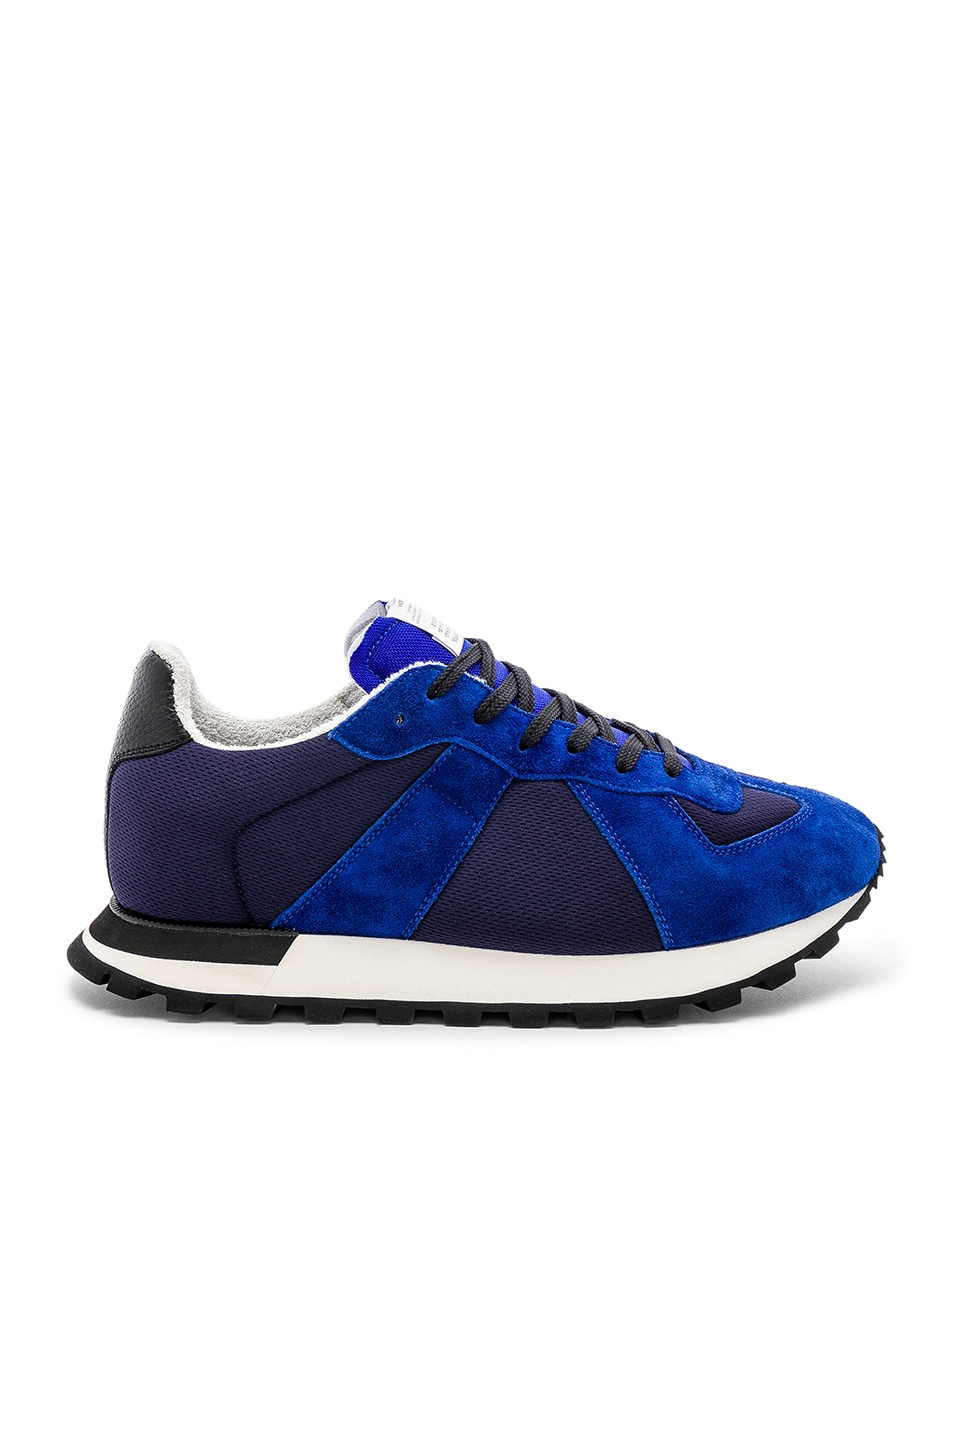 Image 2 of Maison Margiela Replica Runners in Navy & Electric Blue